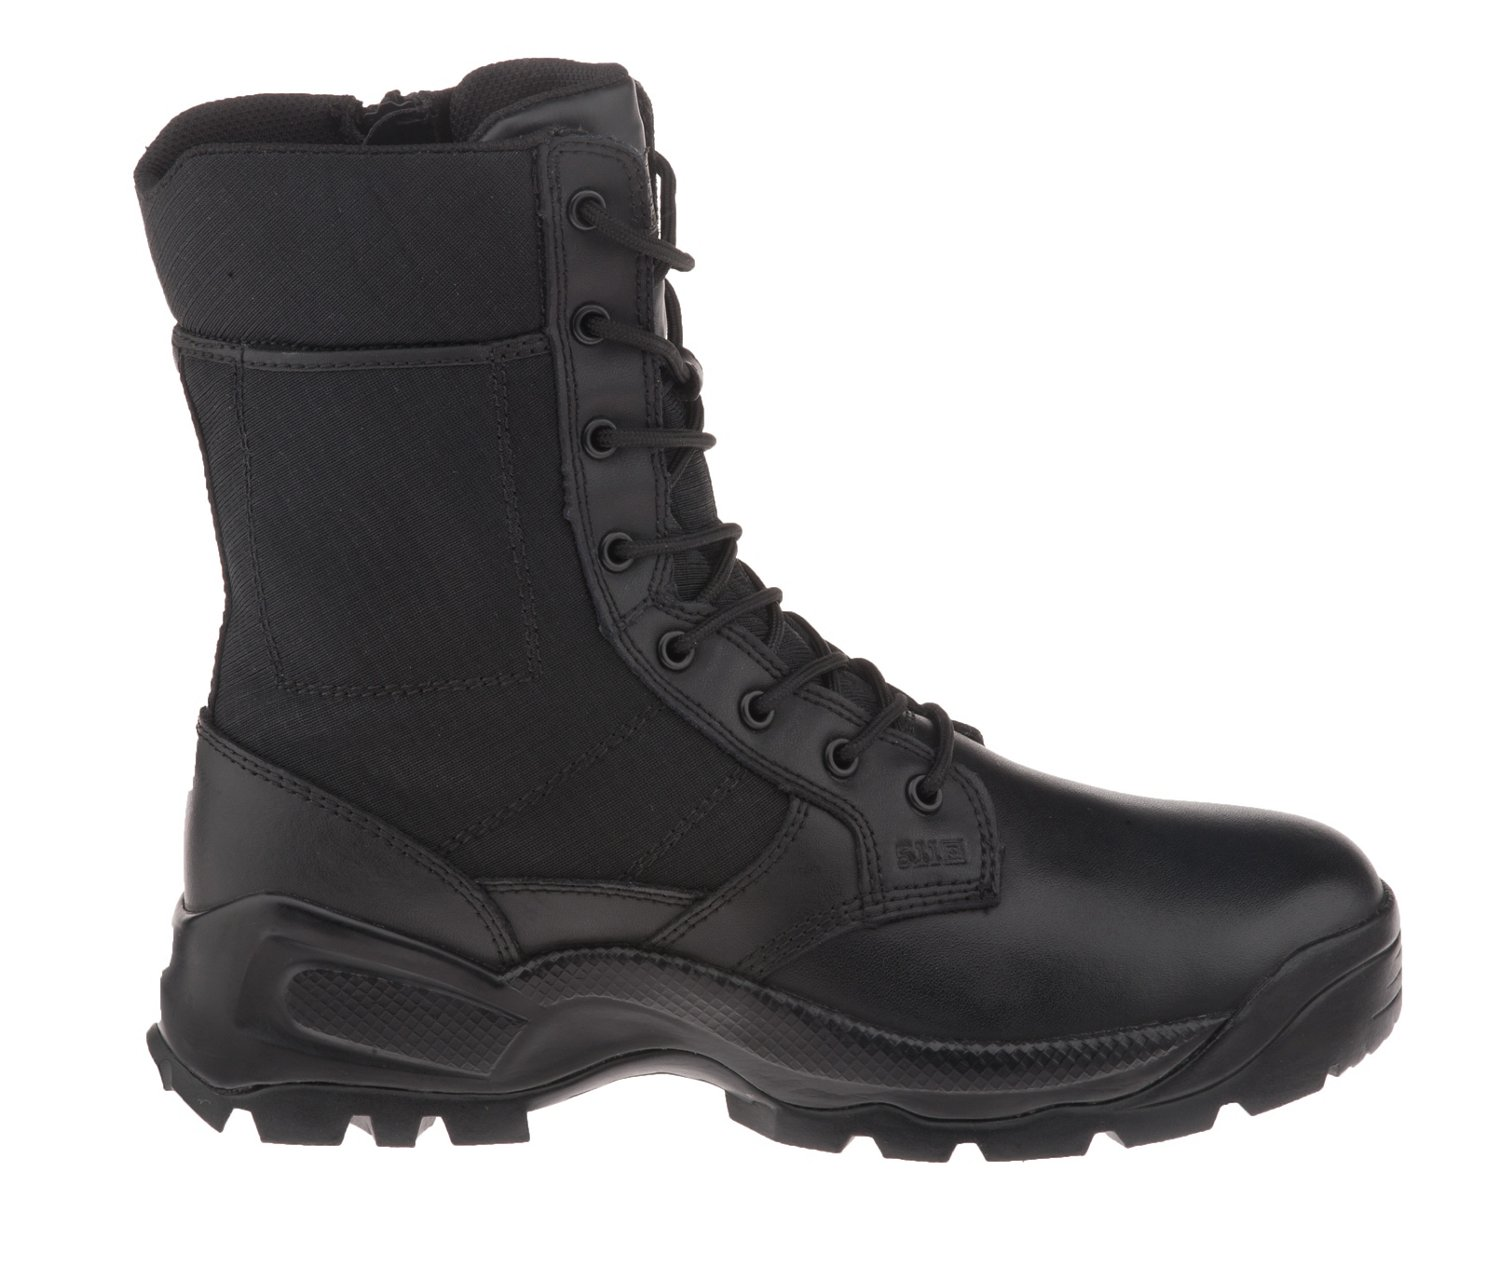 5d4cd0484 Display product reviews for 5.11 Tactical Men's ATAC Speed 2.0 Side-Zip Tactical  Boots